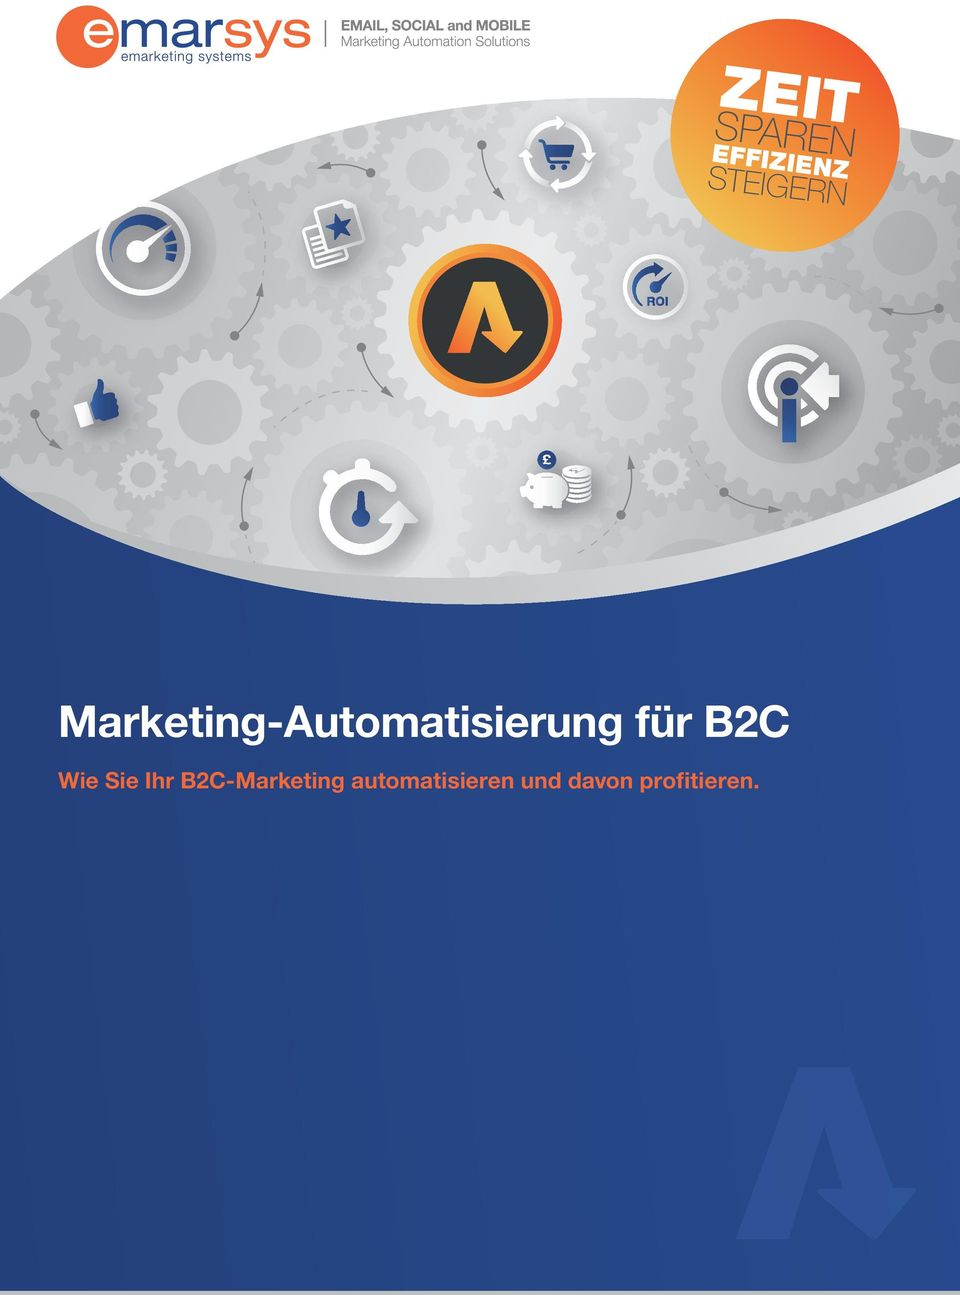 Marketing-Automatisierung für B2C